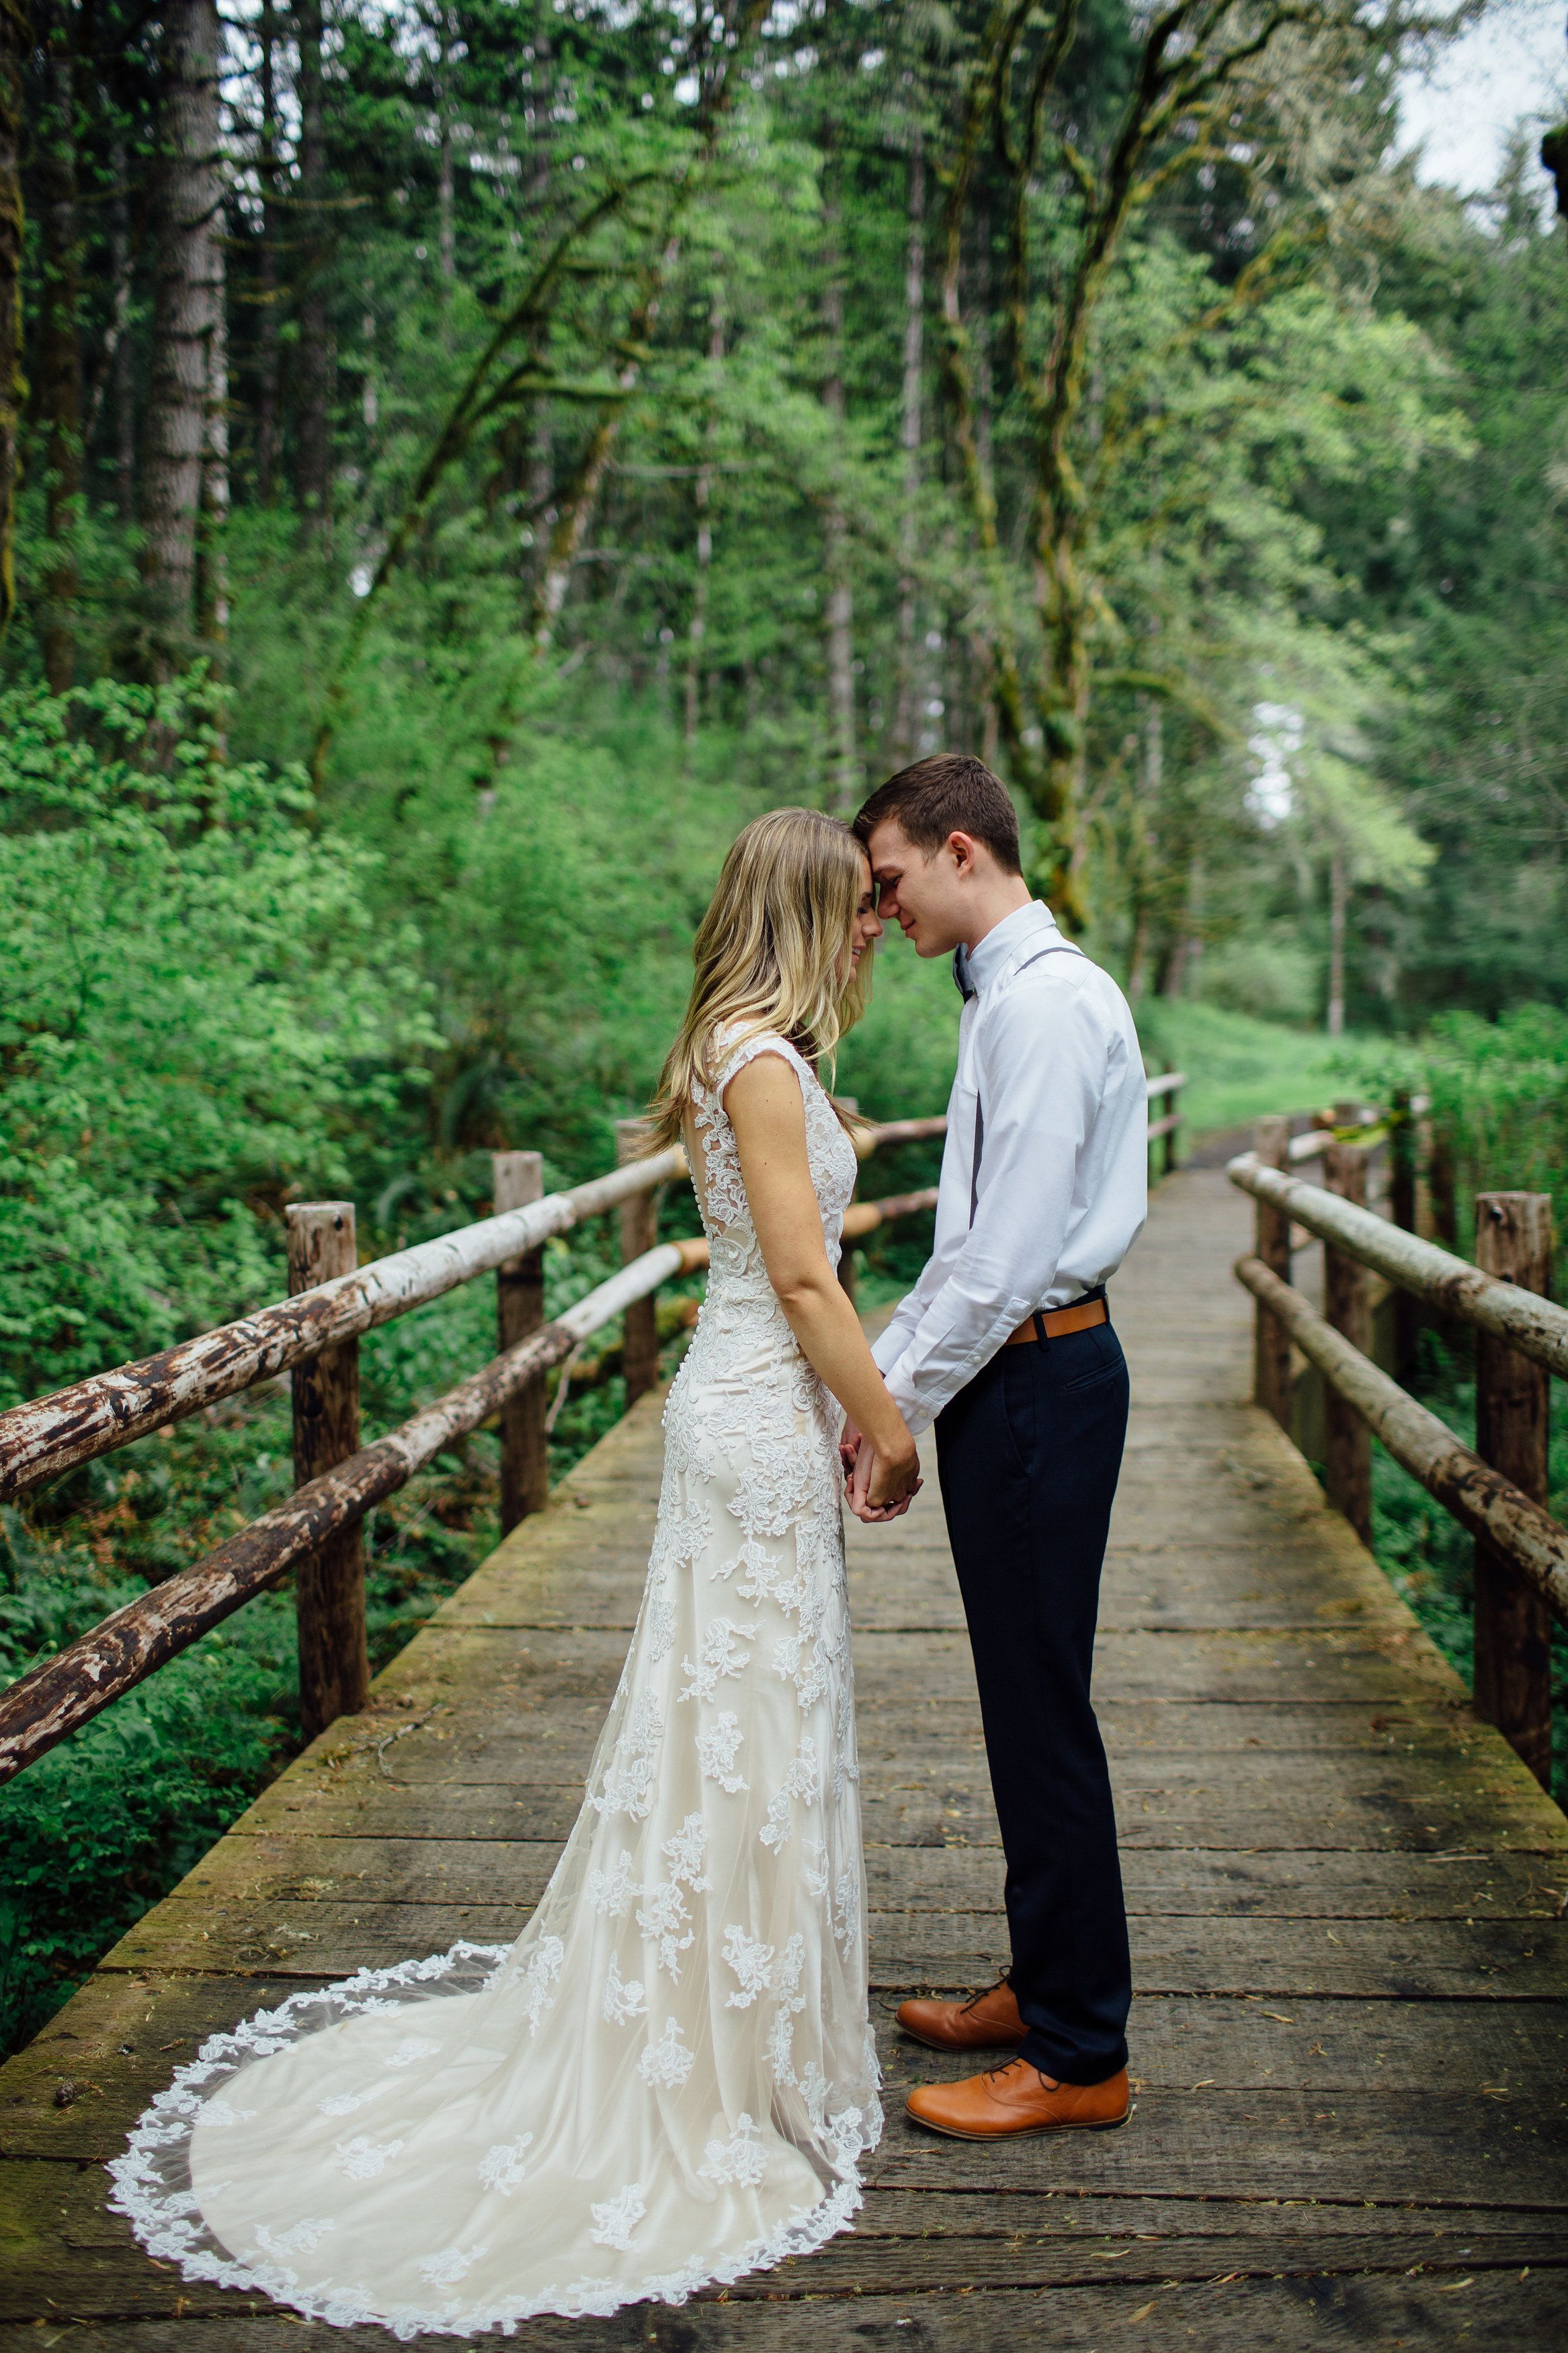 devine wedding // bride and groom // bethany small photography